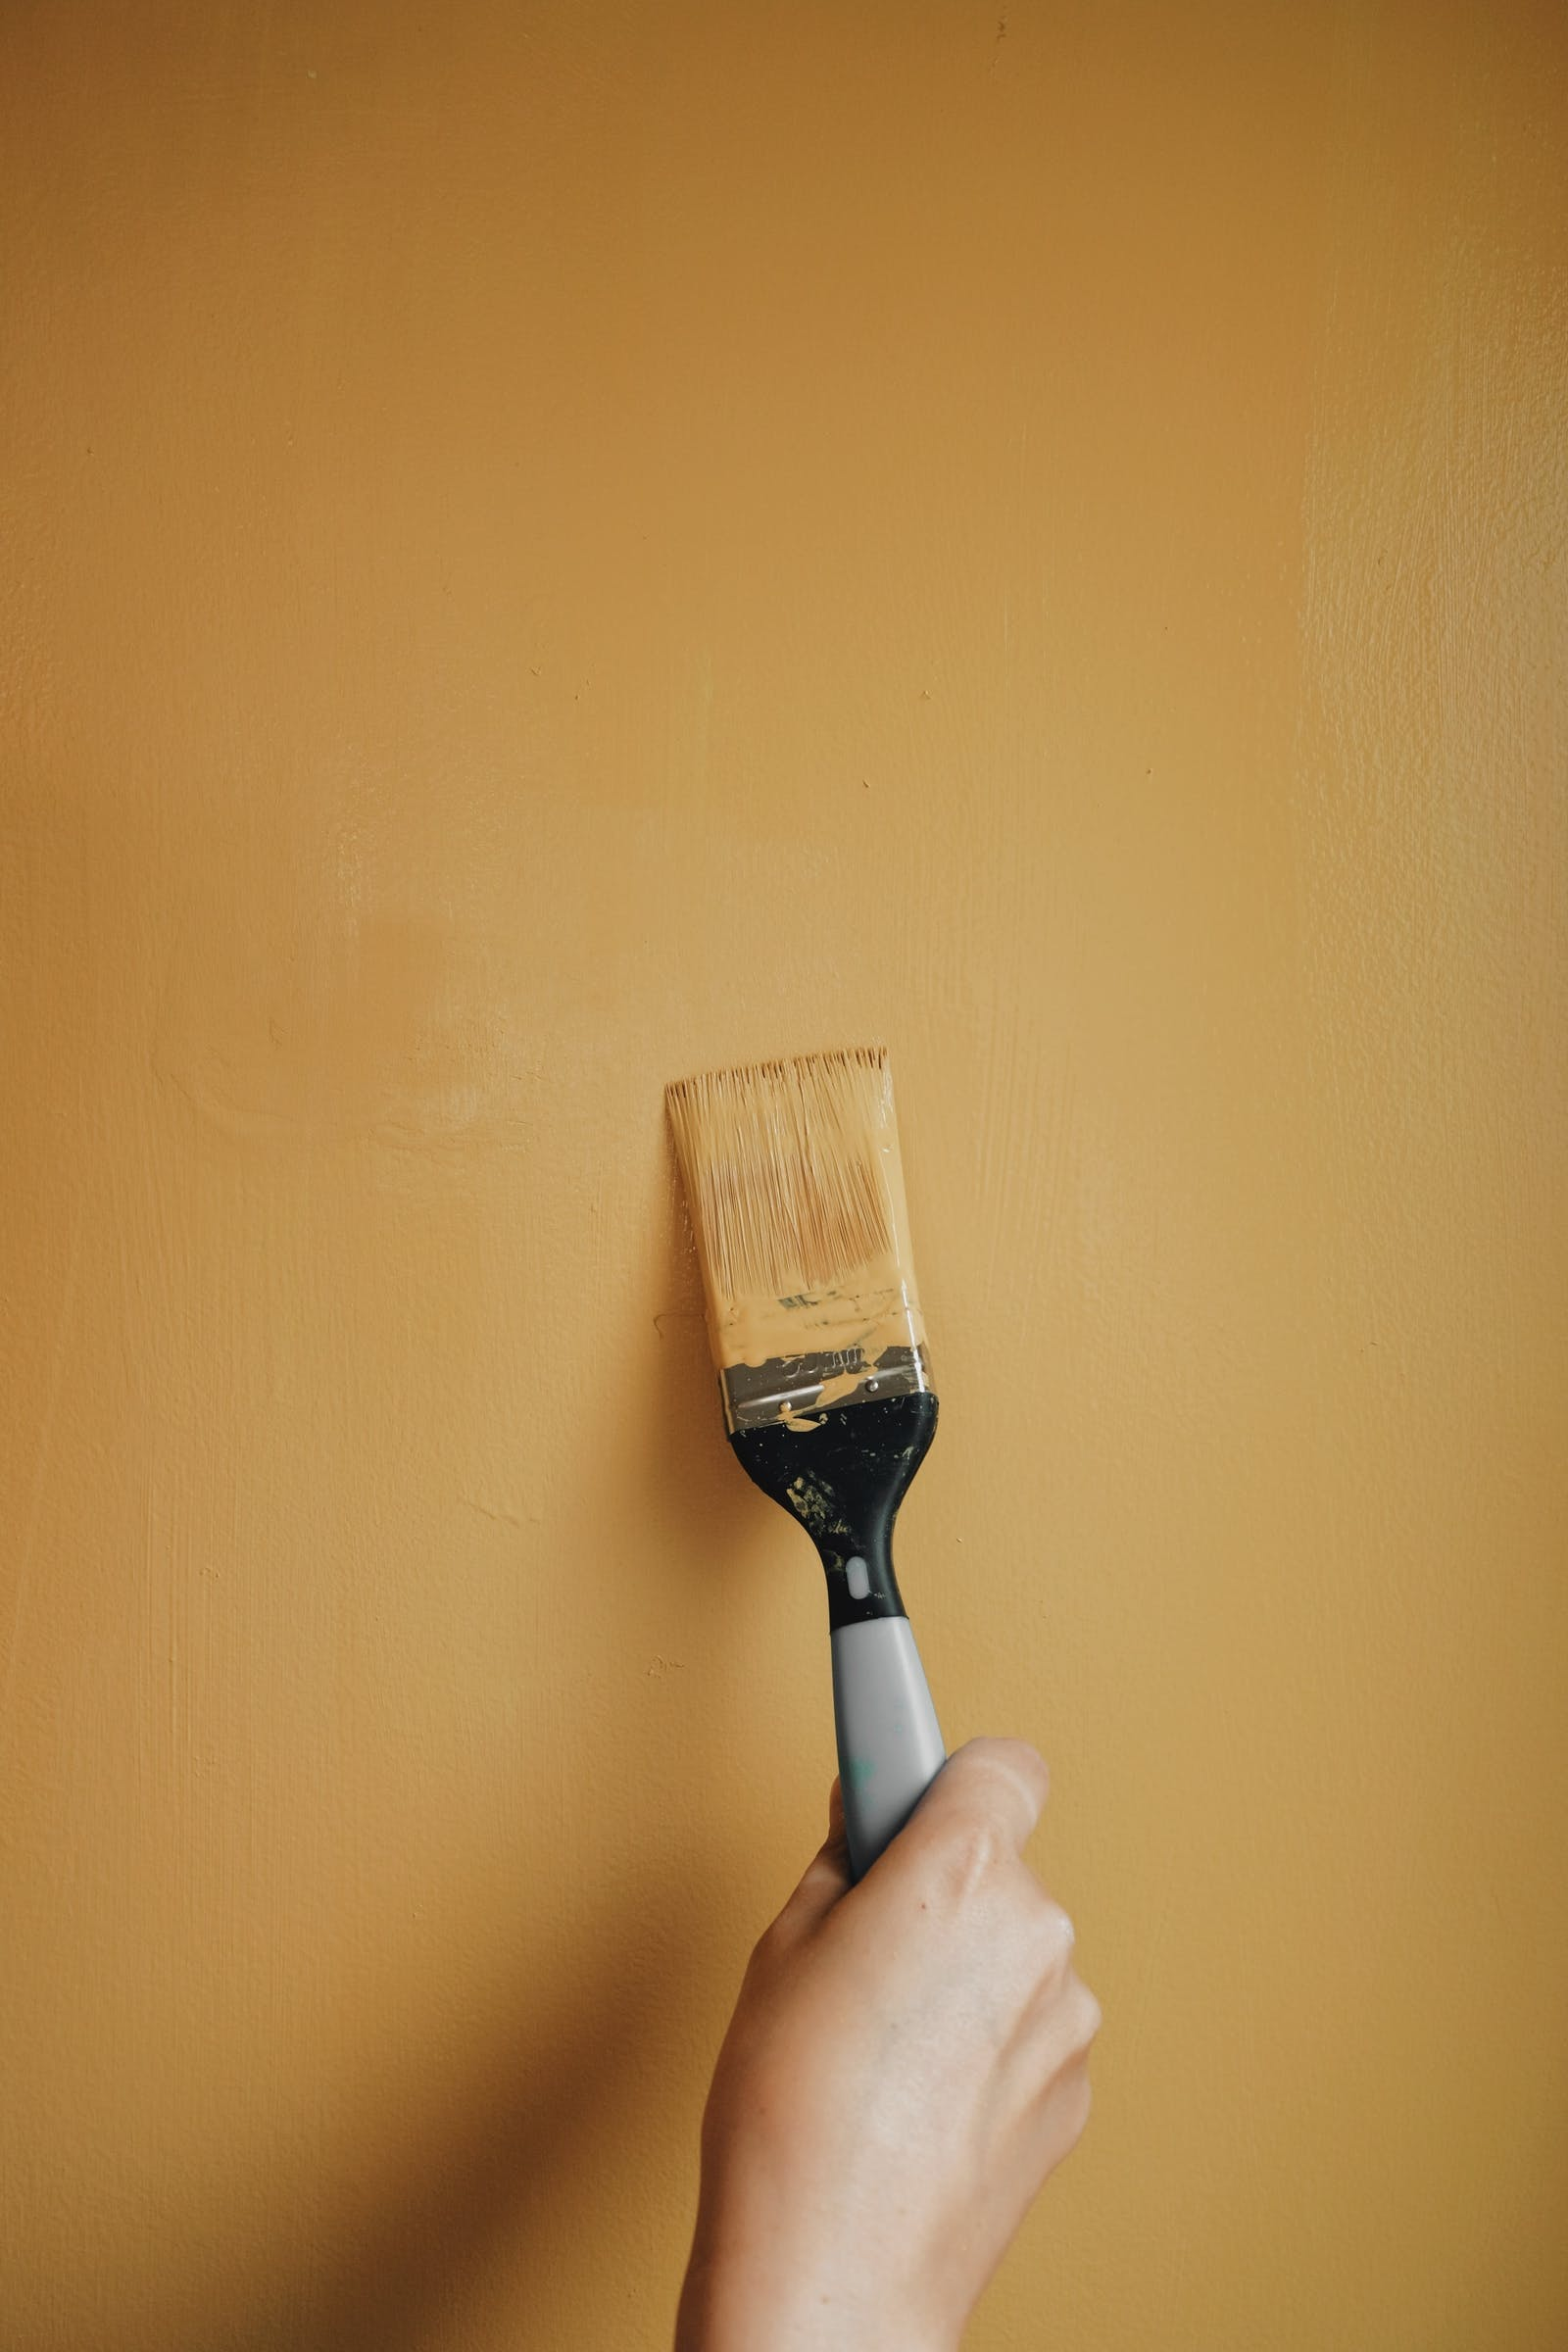 Paint brush topping up wall painted in Lick Yellow 02